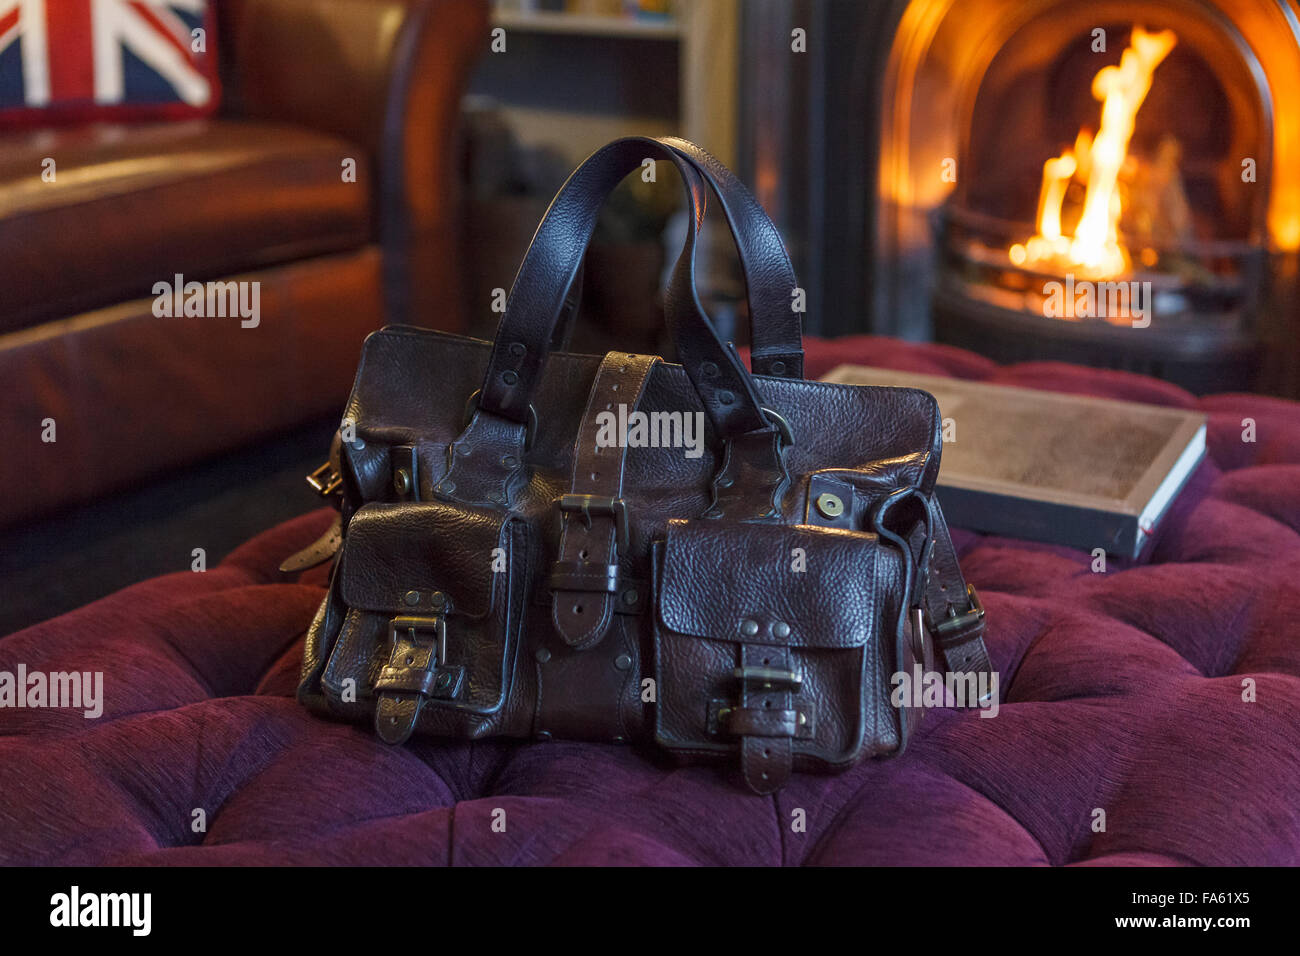 28a6df57092d Mulberry Handbag Stock Photos   Mulberry Handbag Stock Images - Alamy